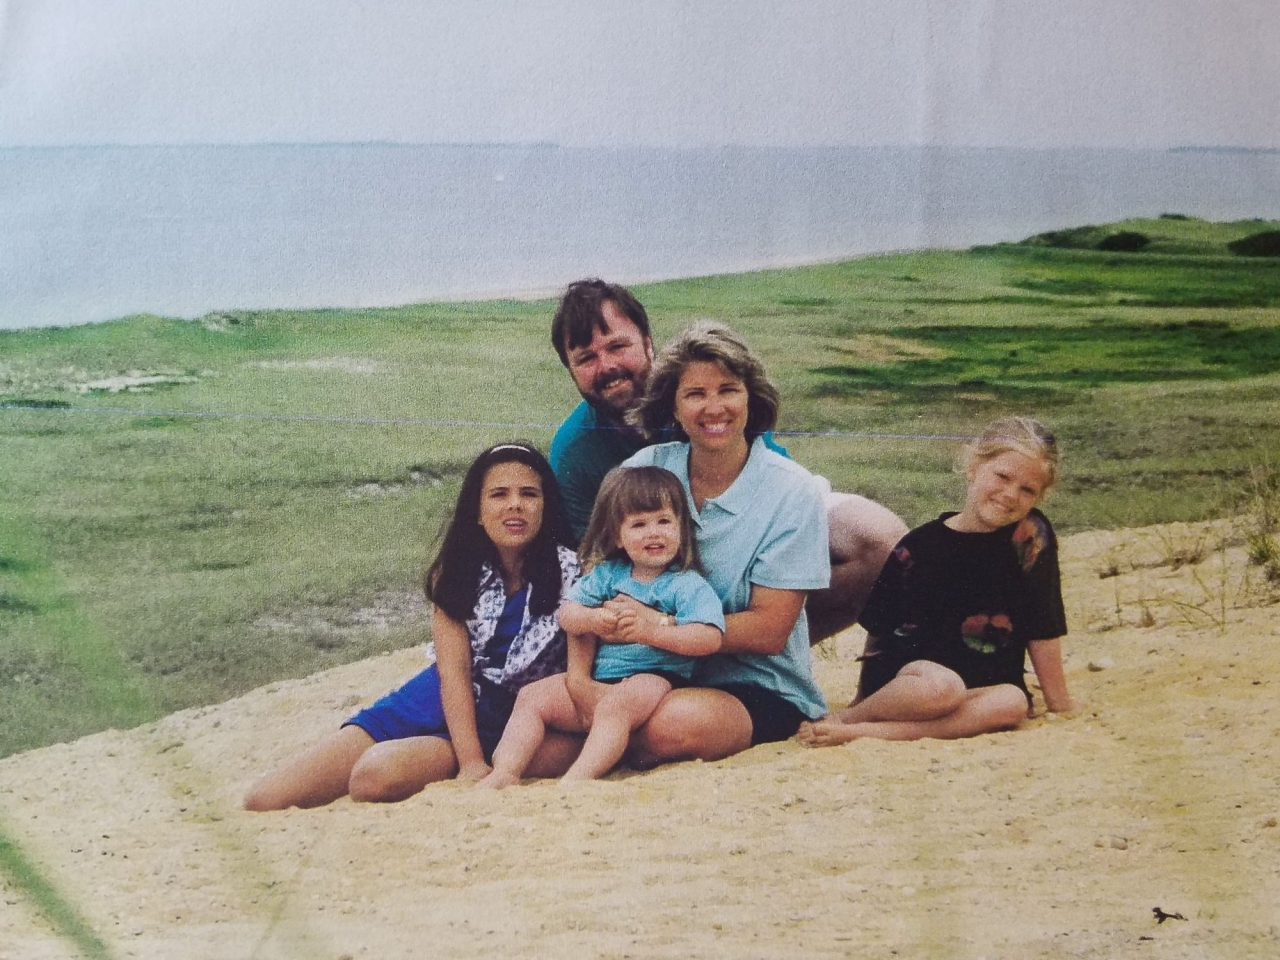 Mom, dad and three daughters pose for family photo on dune in Wellfleet, MA